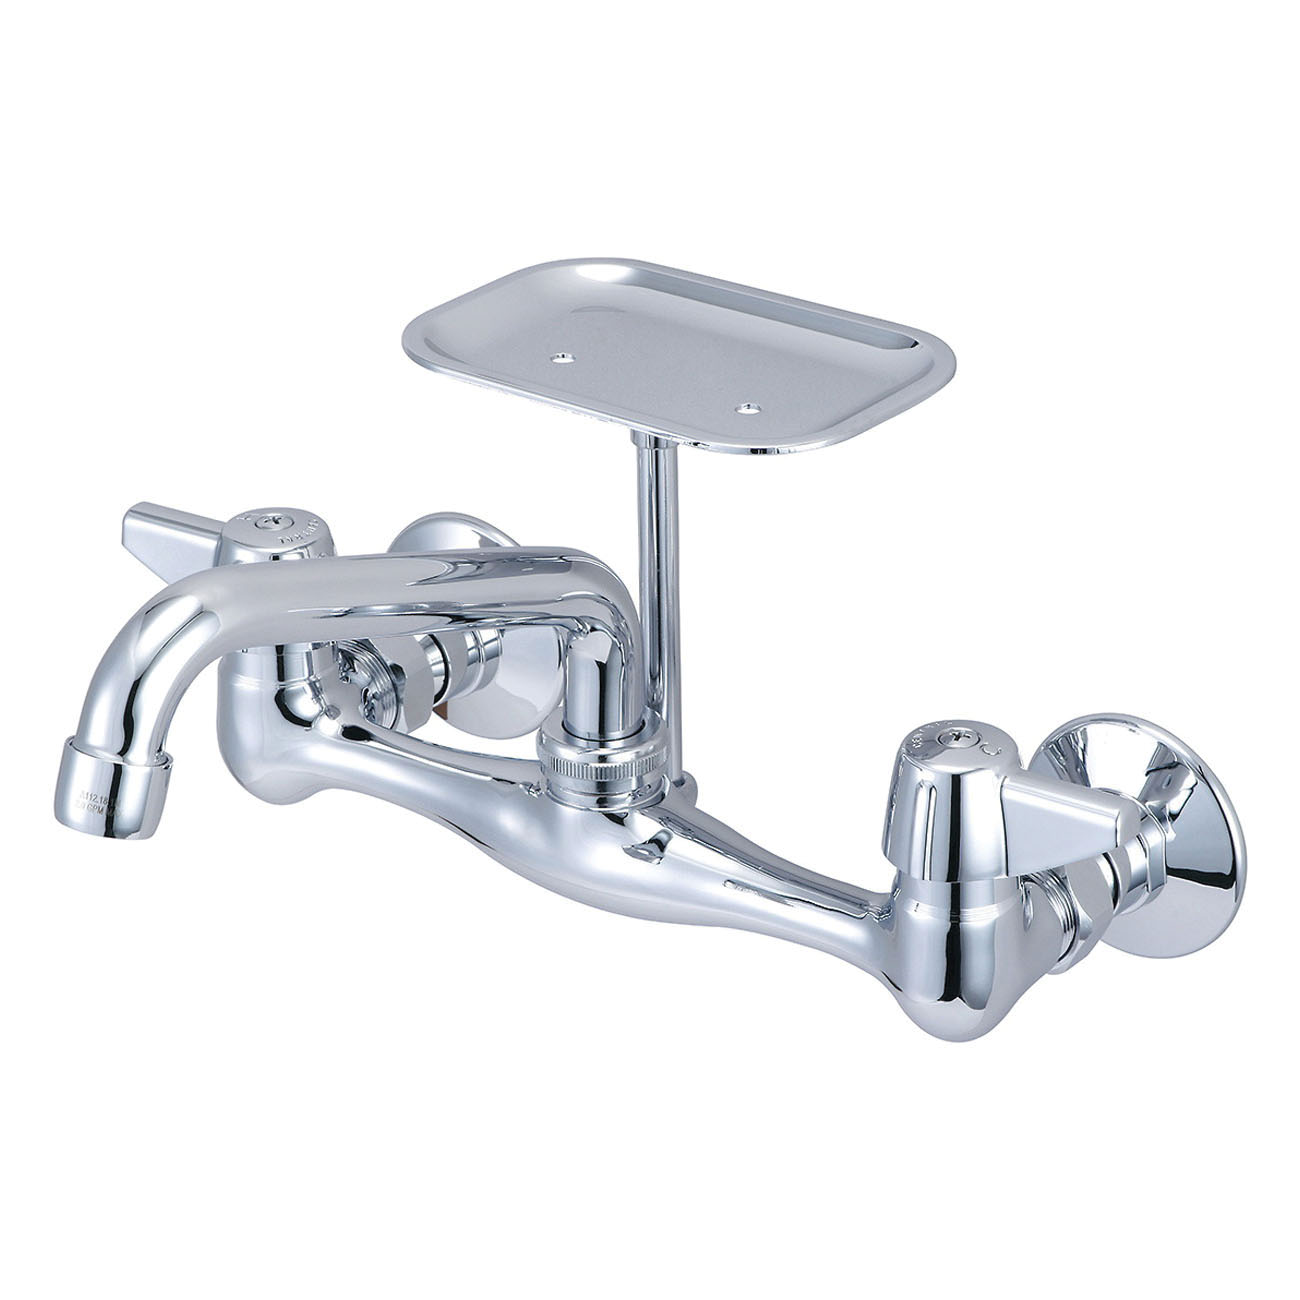 Central Brass 0048-TA Kitchen Faucet, 1.5 gpm, 7-7/8 to 8-1/8 in Center, 2 Handles, Polished Chrome